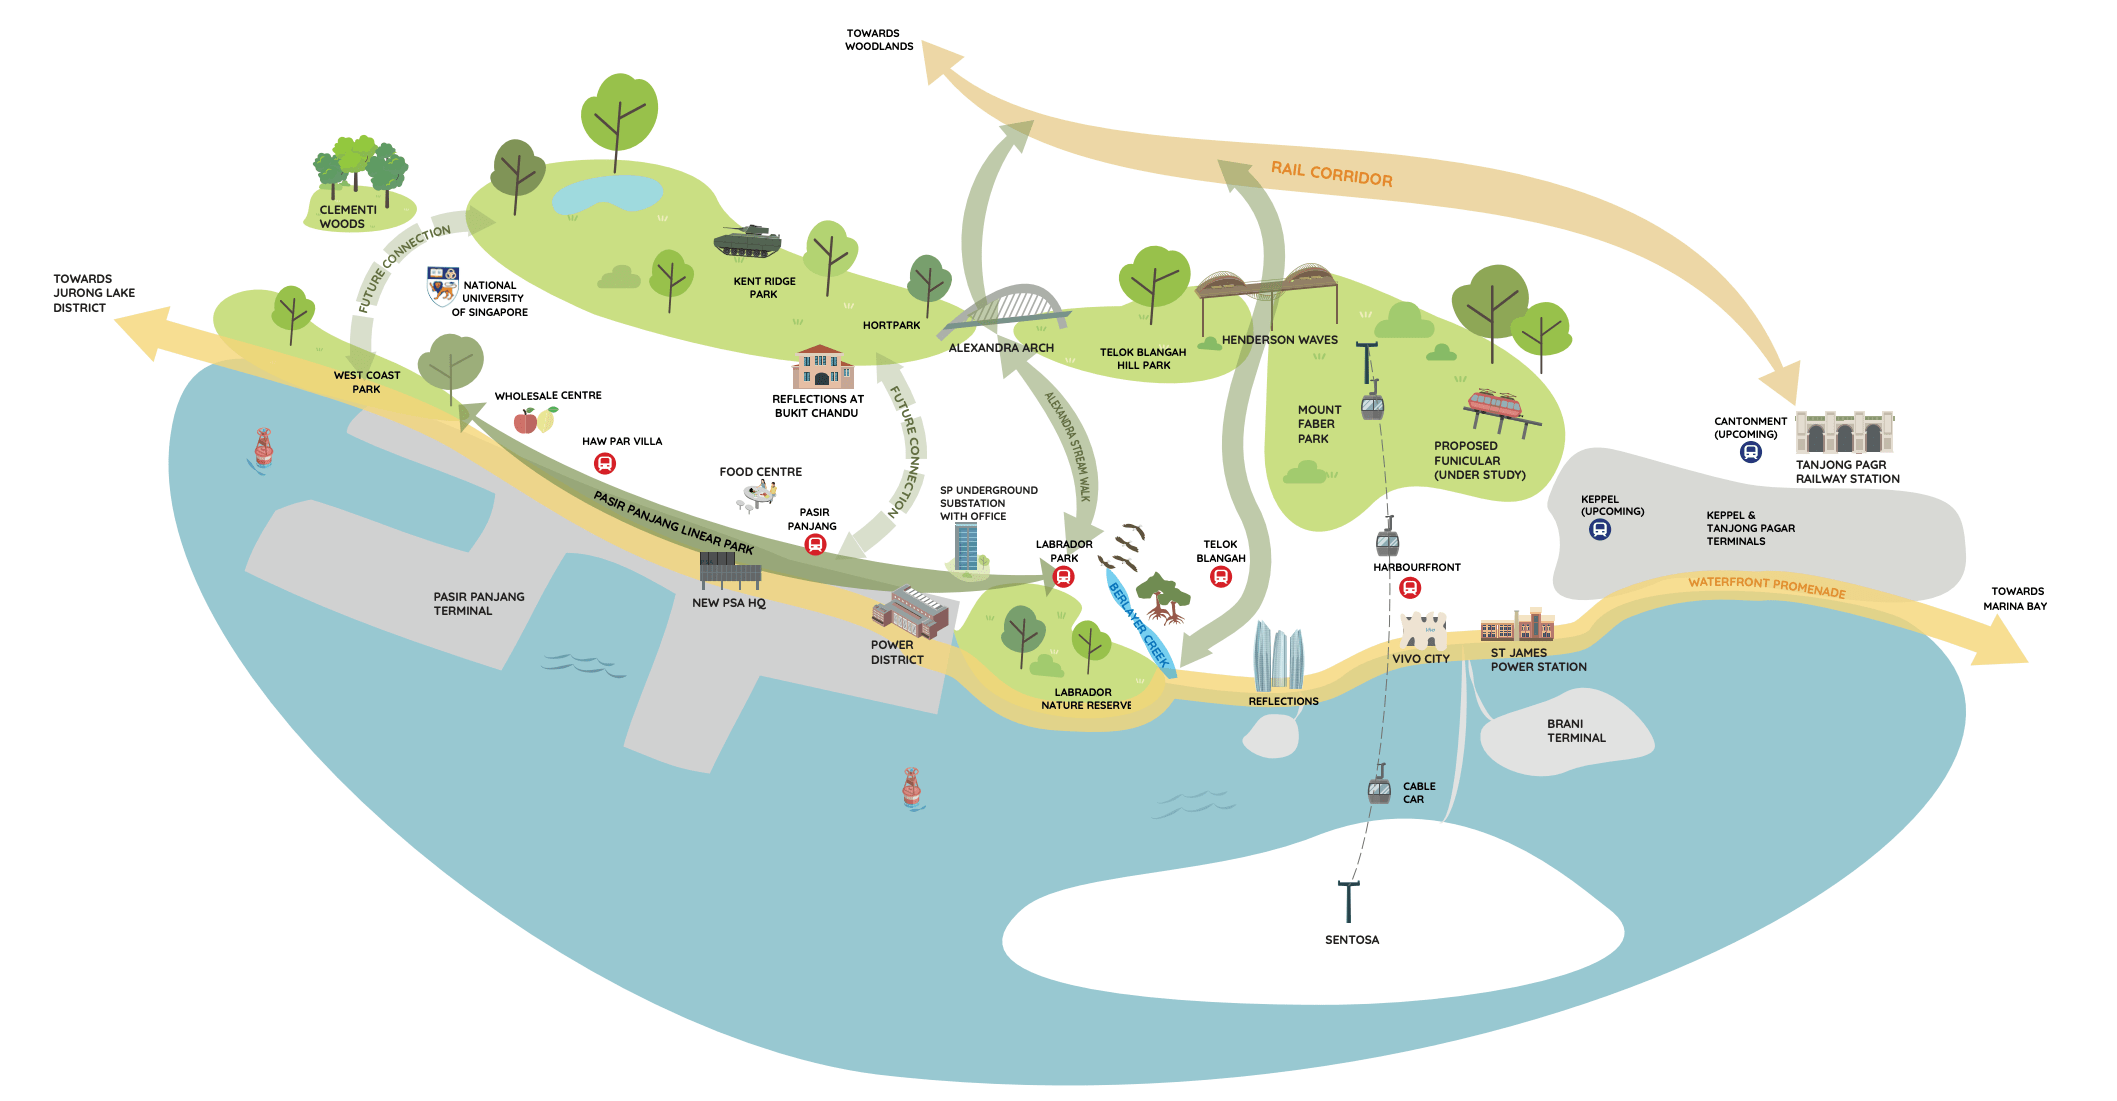 greater southern waterfront green spaces